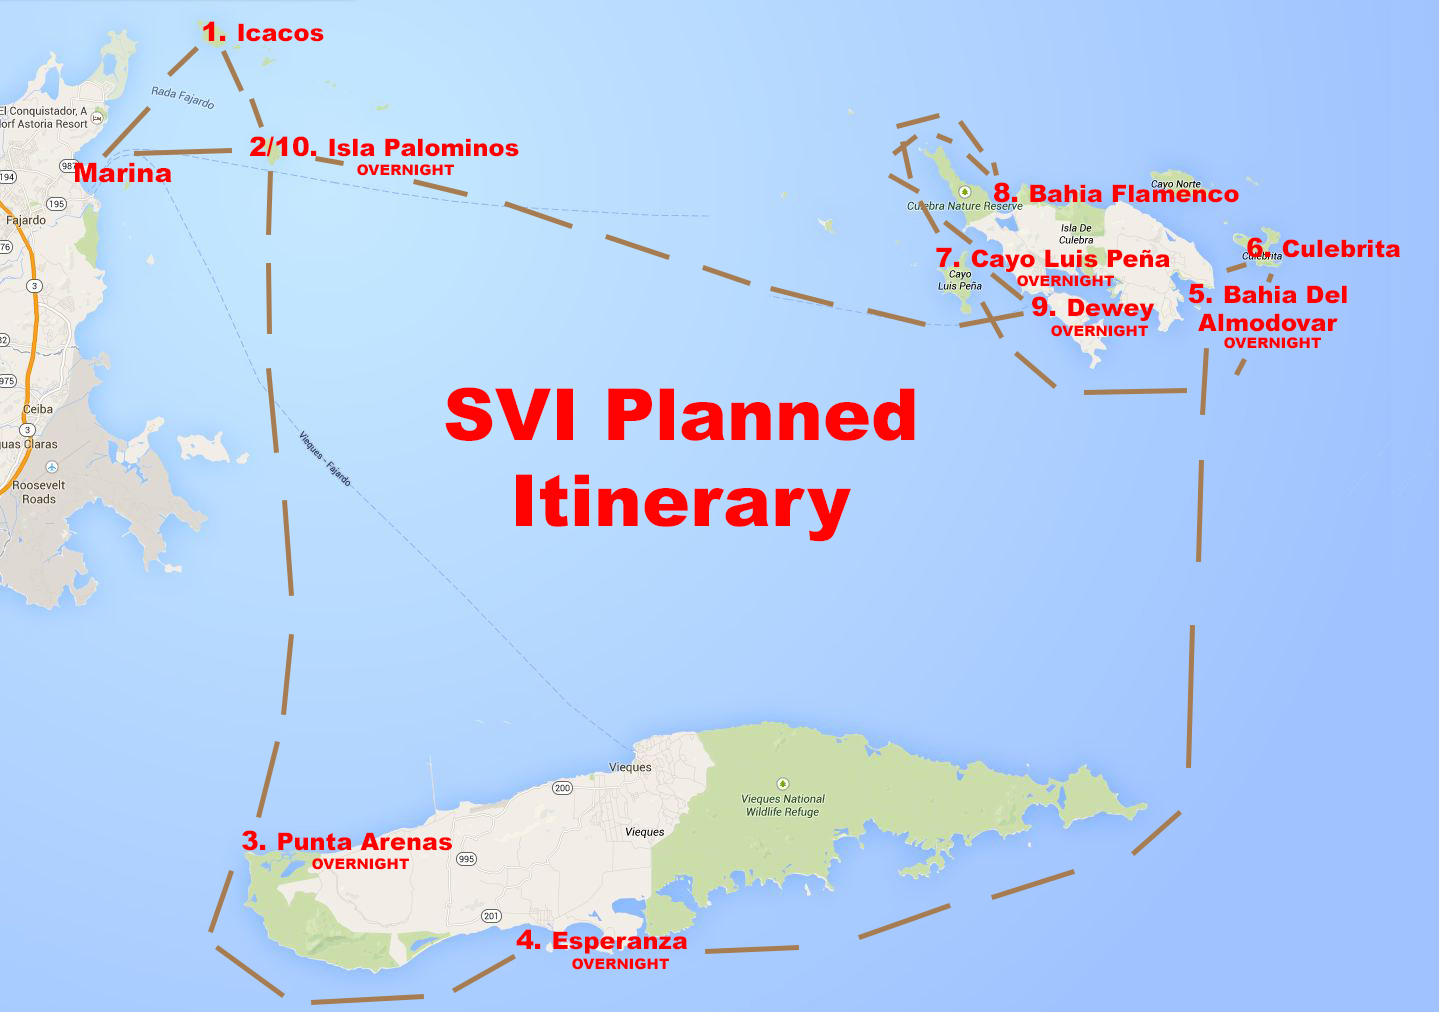 Planning the Spanish Virgin Islands